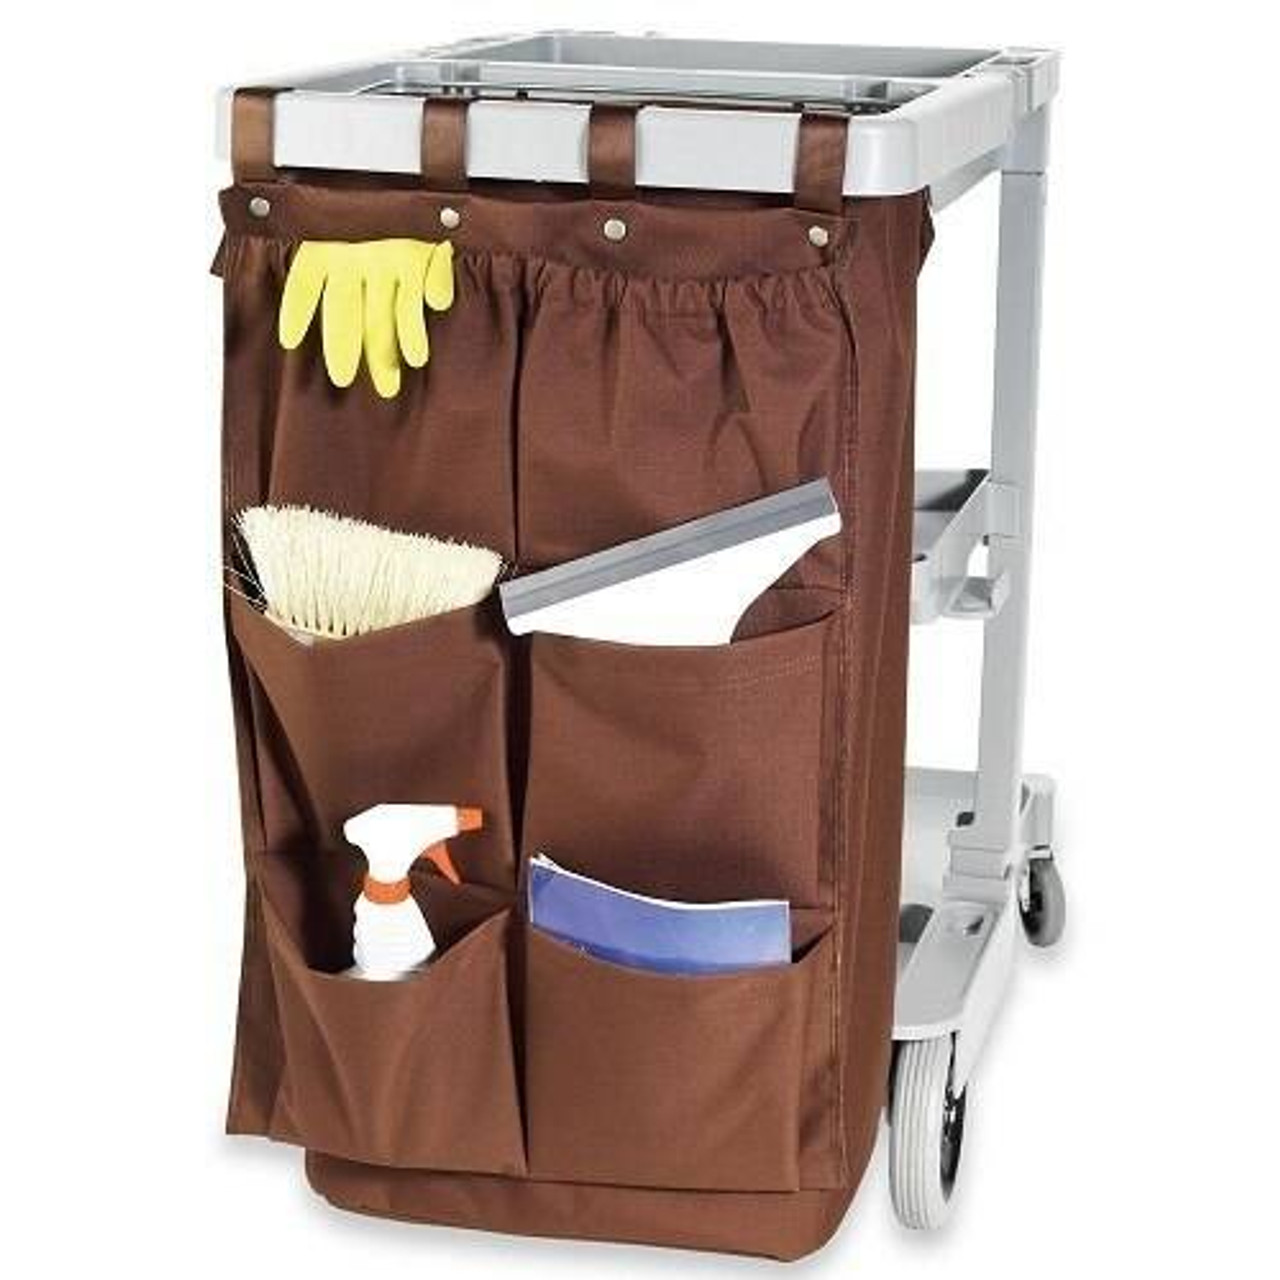 HOSPITALITY 1 SOURCE HOSPITALITY 1 SOURCE or 6 POCKET or X DUTY HOUSEKEEPING or CADDY BAGS or 19x32 or BROWN or 5 PER CASE